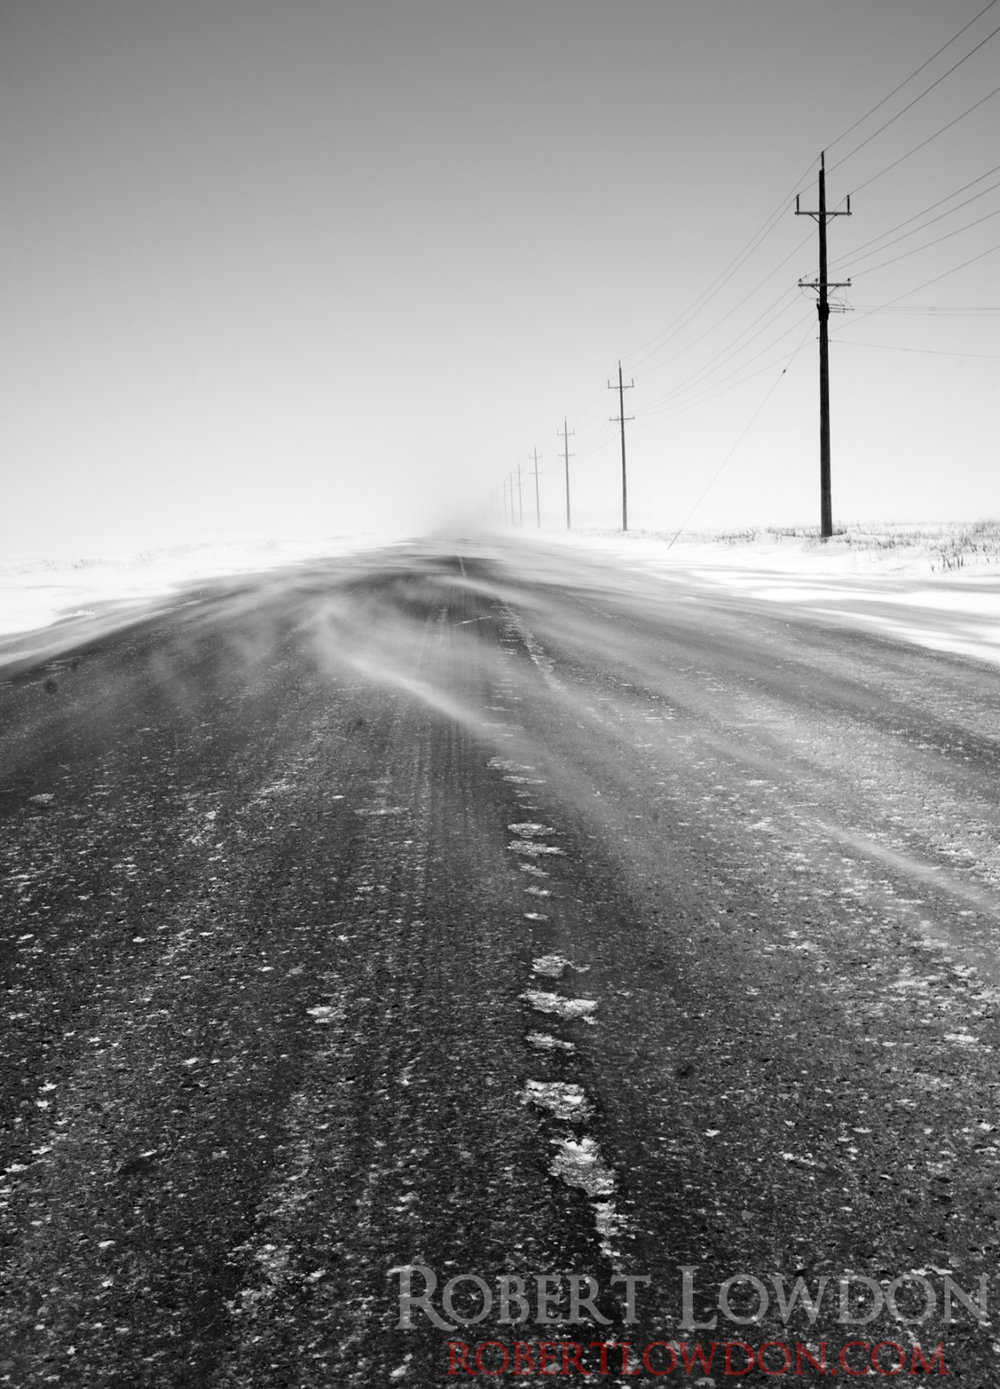 Winter on the Prairies.   Hey sometimes it's just a lonely long cold road. Pun most definitely intended.